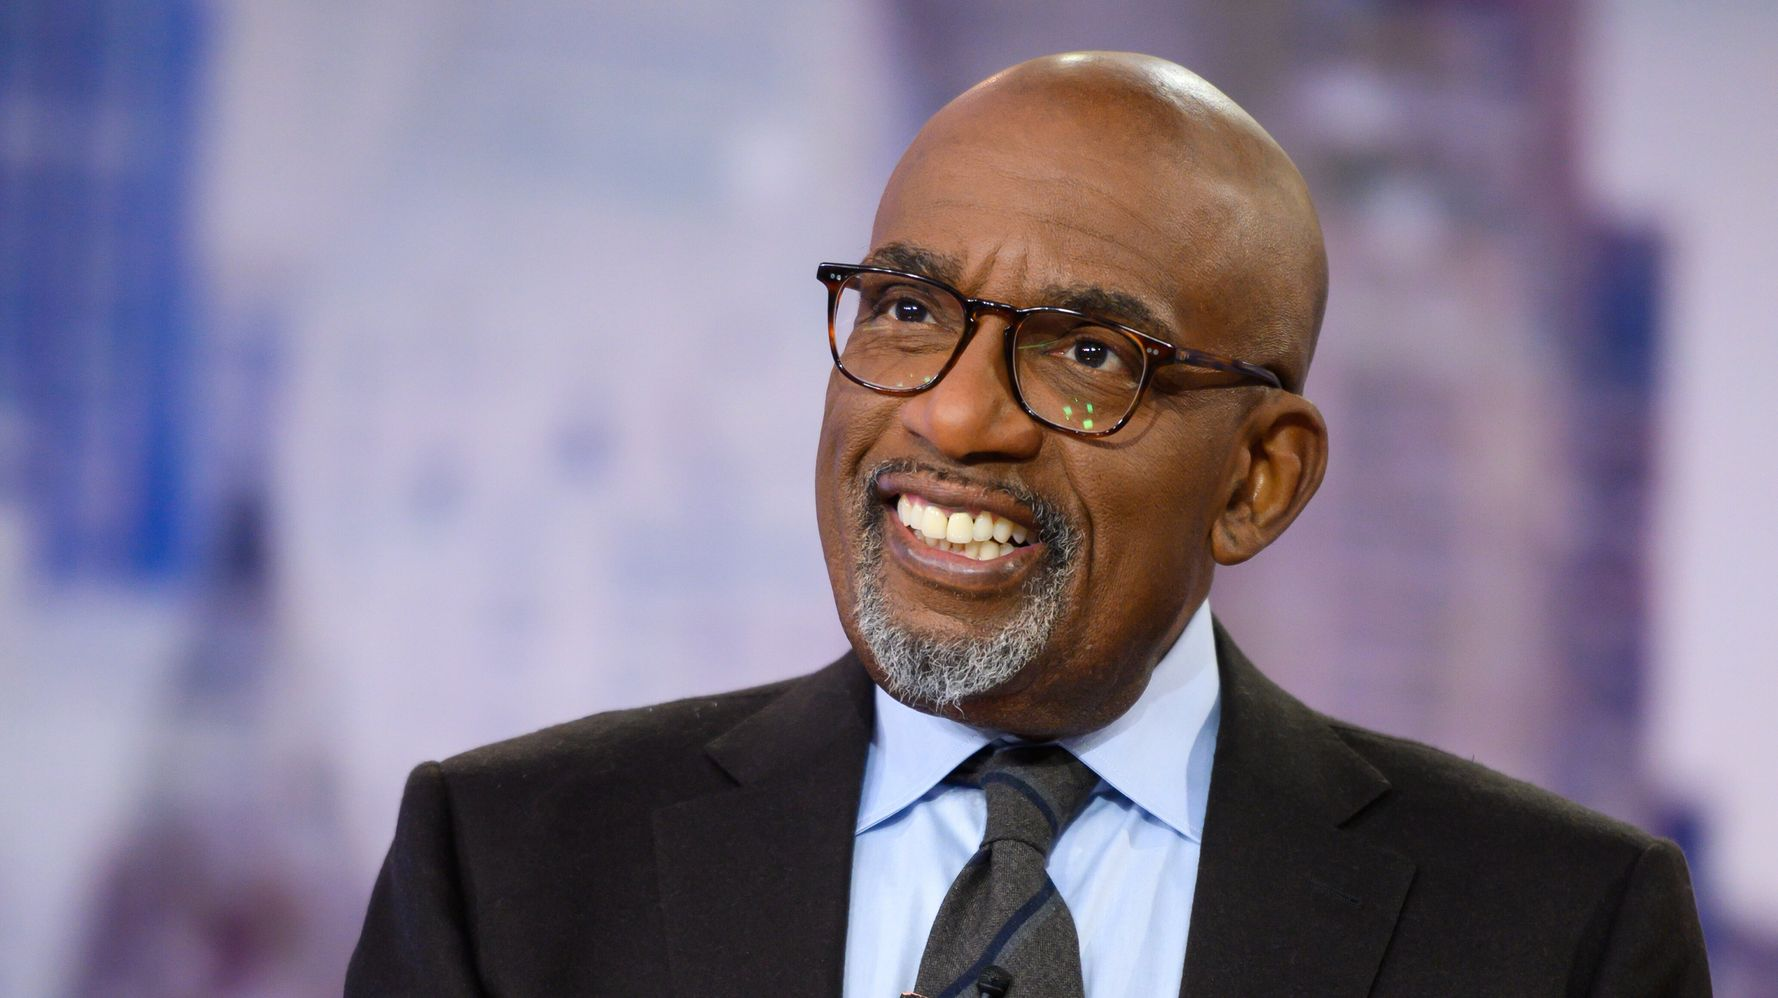 Al Roker Reveals Prostate Cancer Diagnosis, Says He Will Undergo Surgery